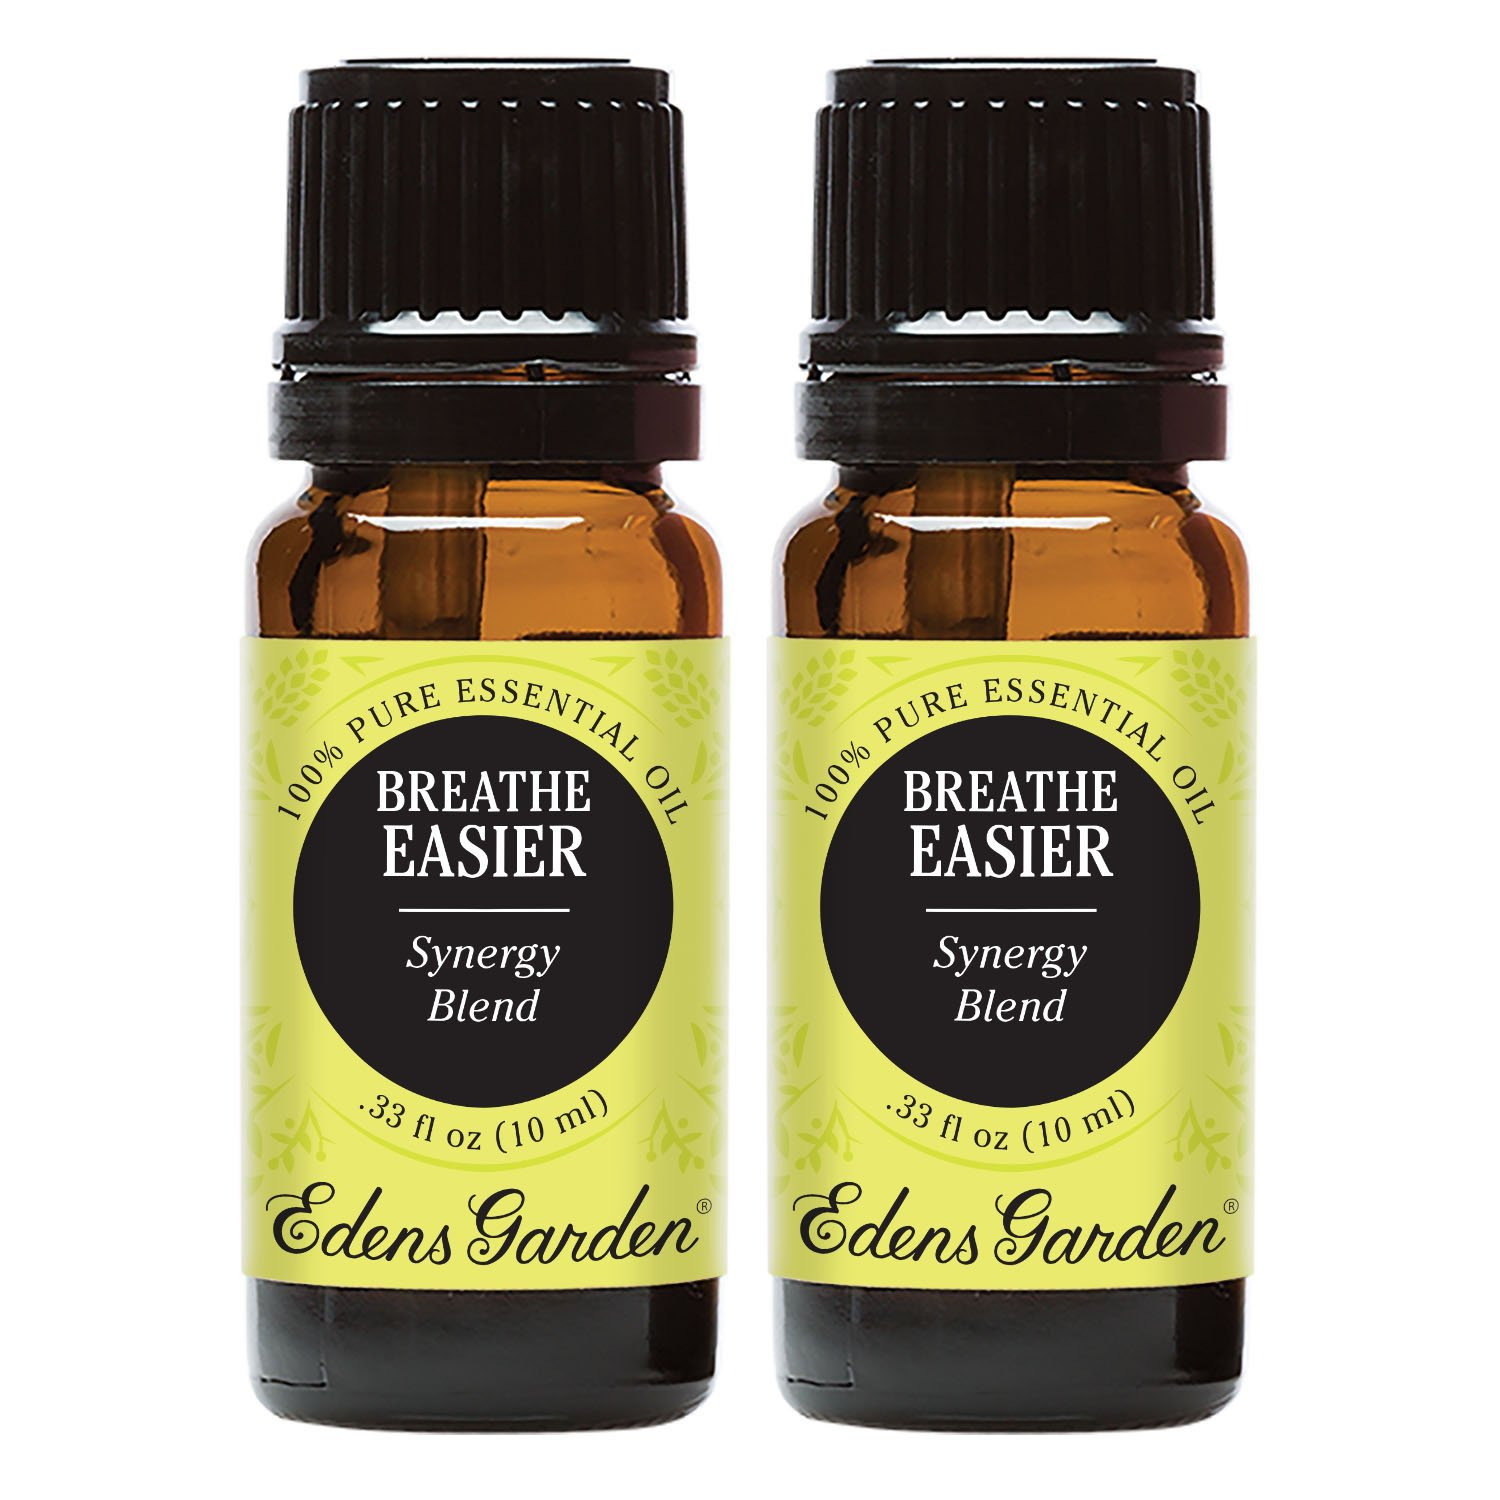 Edens Garden Breathe Easier Essential Oil Synergy Blend, 100% Pure Therapeutic Grade (Allergies & Congestion) 10 ml Value Pack